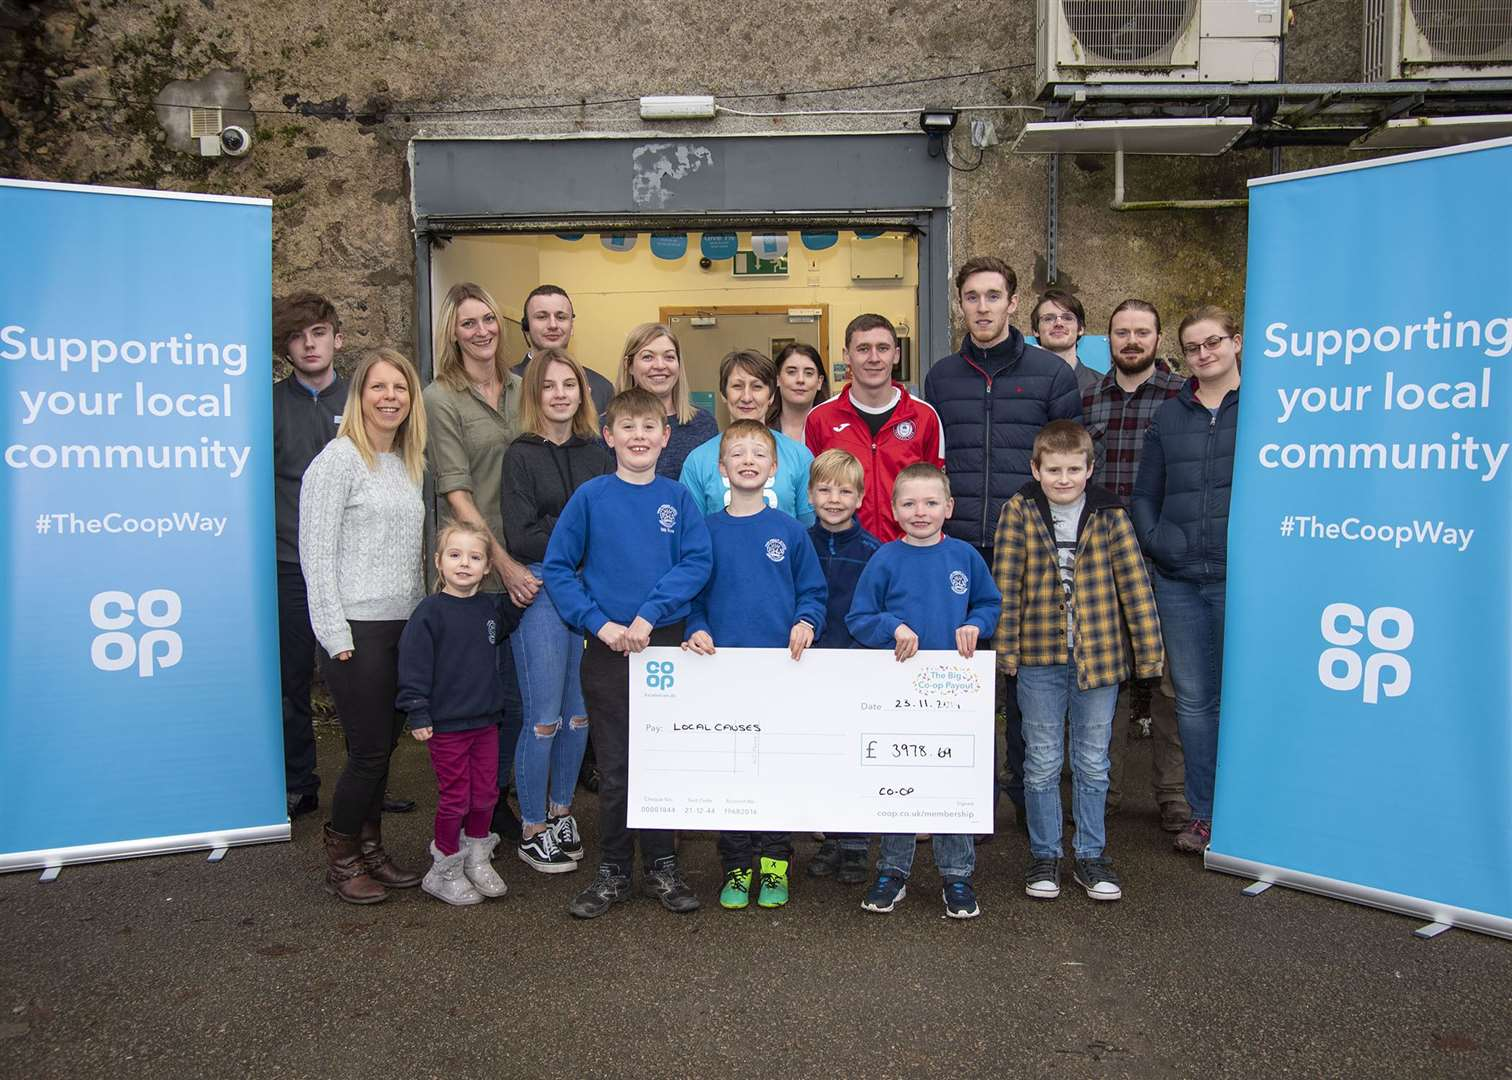 Fyvie community groups receiving their cheques as part of the Co-op Community Fund.Picture: George Murdoch